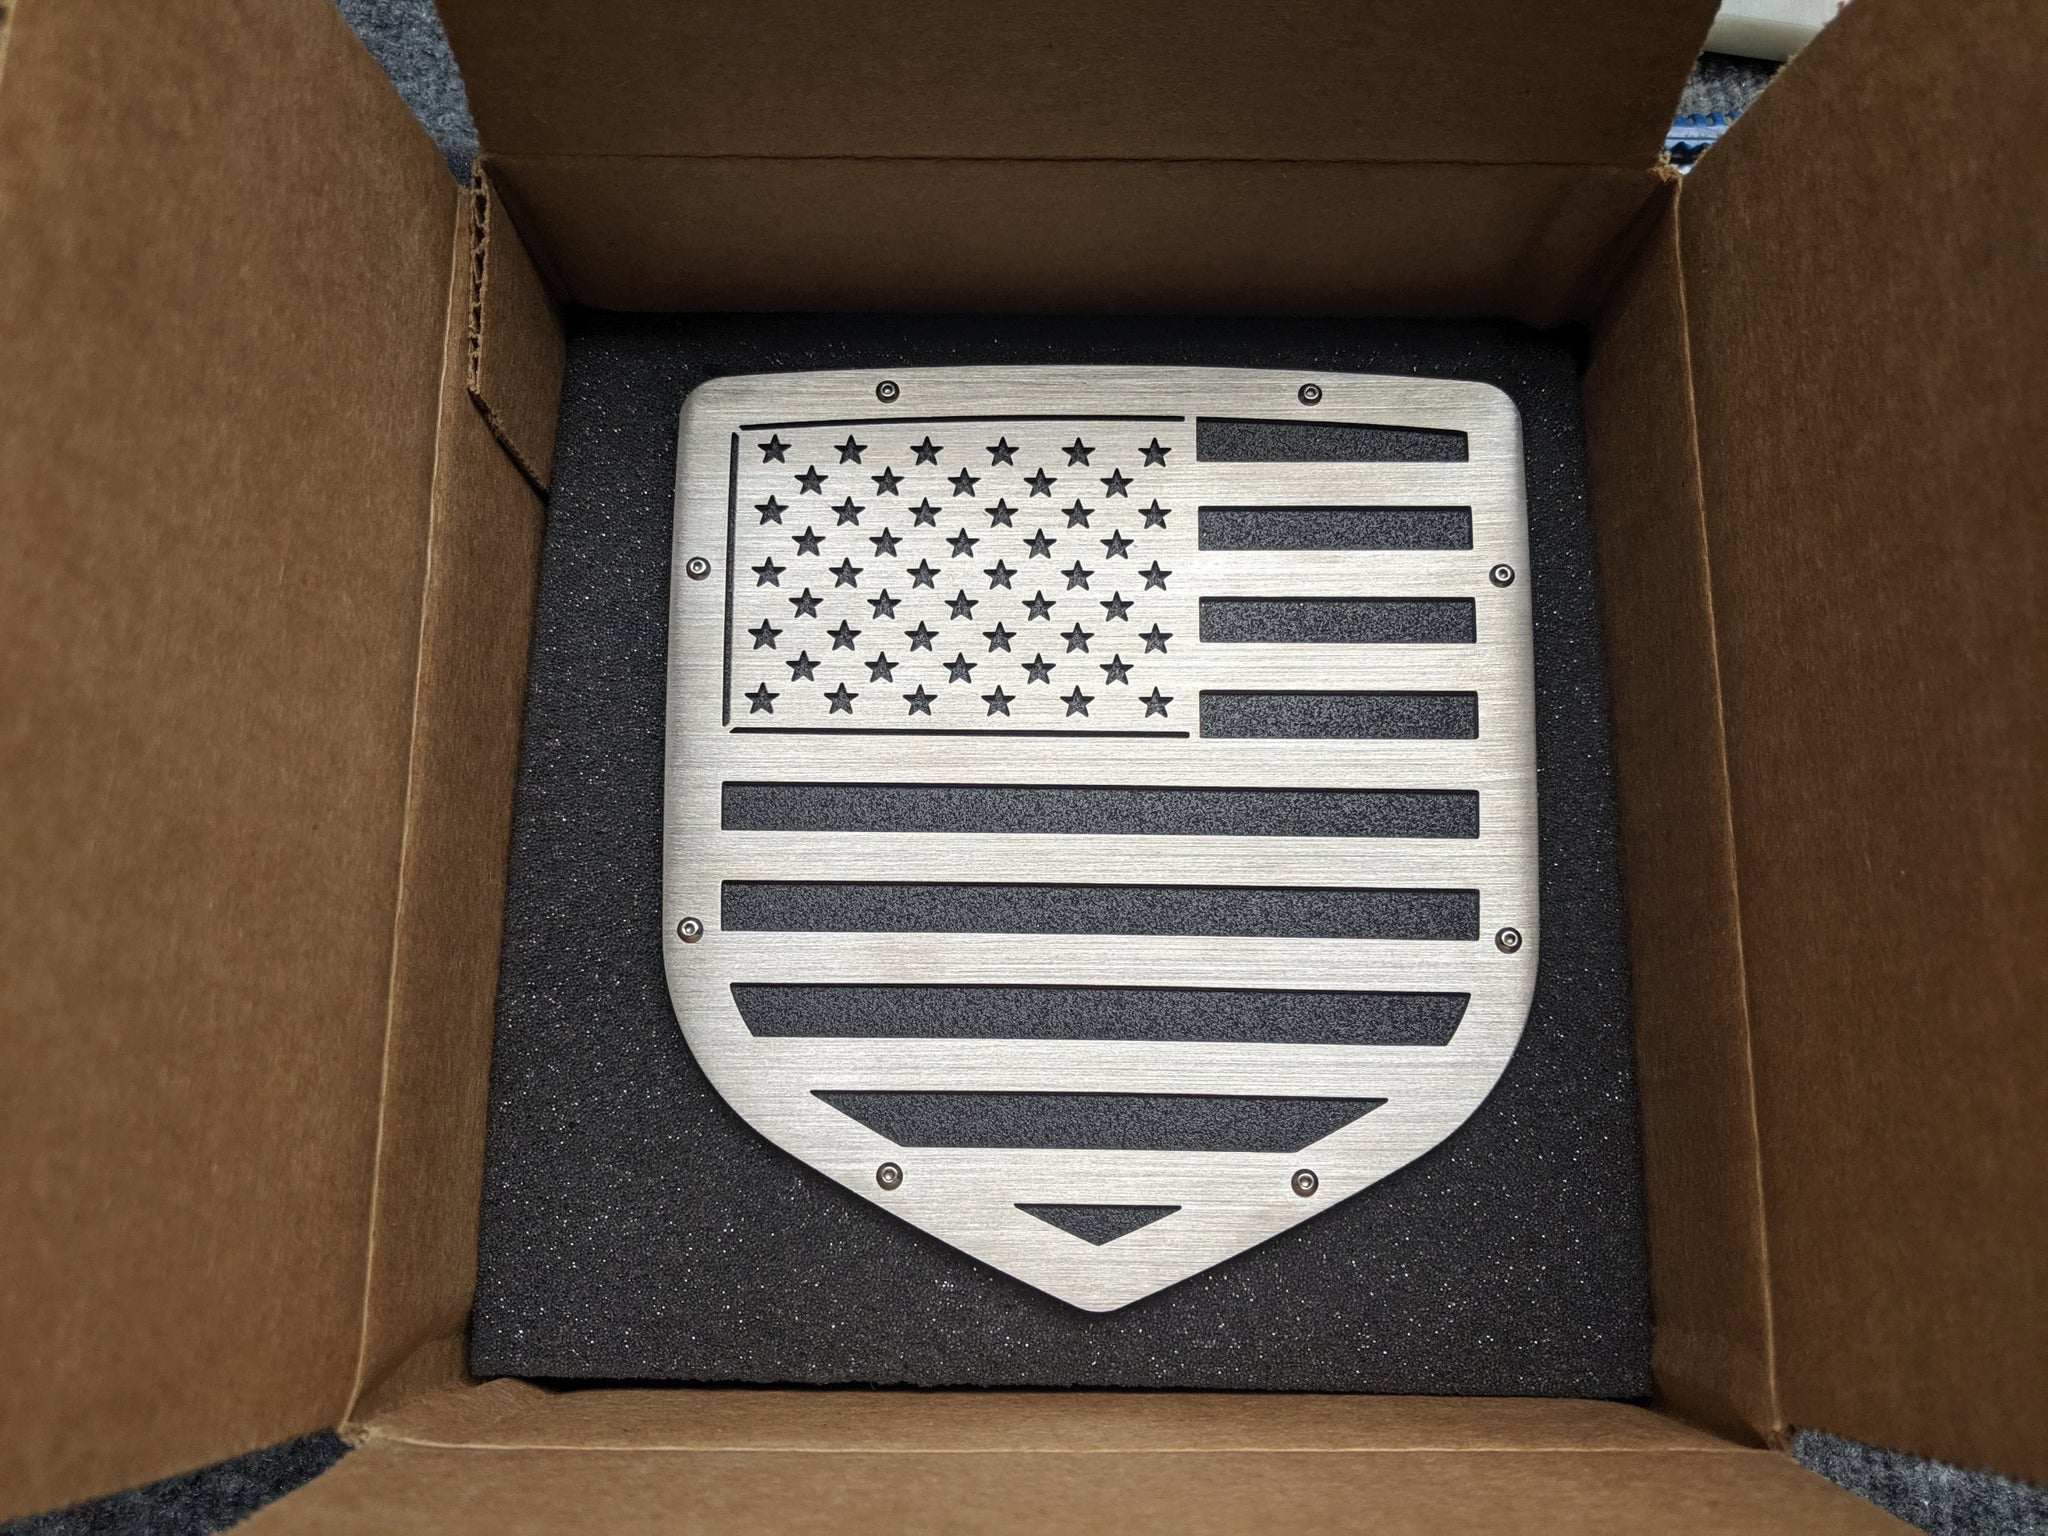 Ready to Ship - American Flag Tailgate Emblem w/Bolts - Fits 2009-2018 Ram® 1500, 2500, 3500